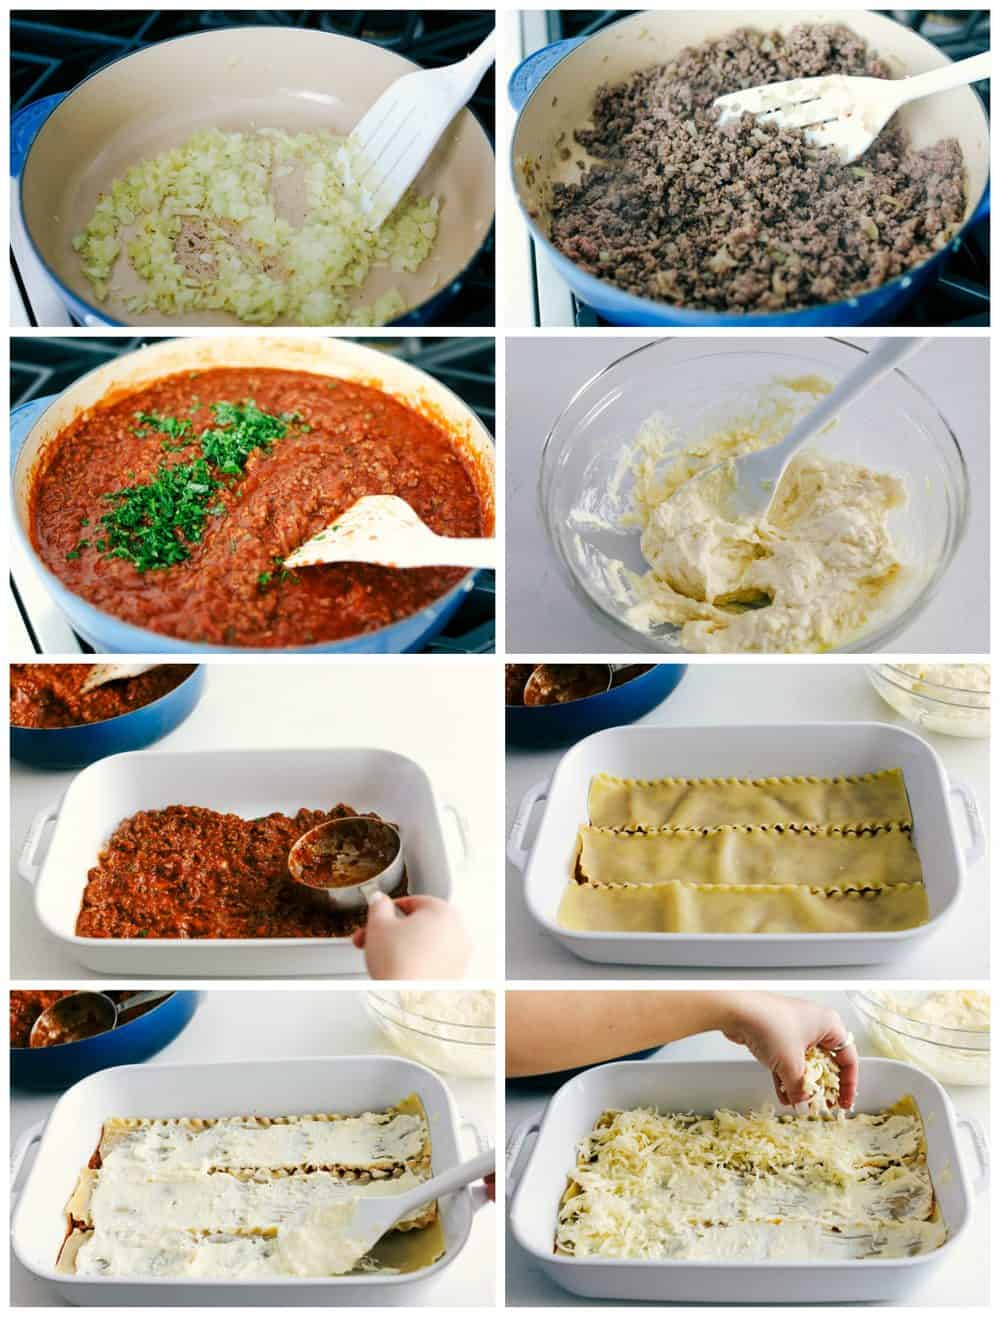 Step by step process of making lasagna